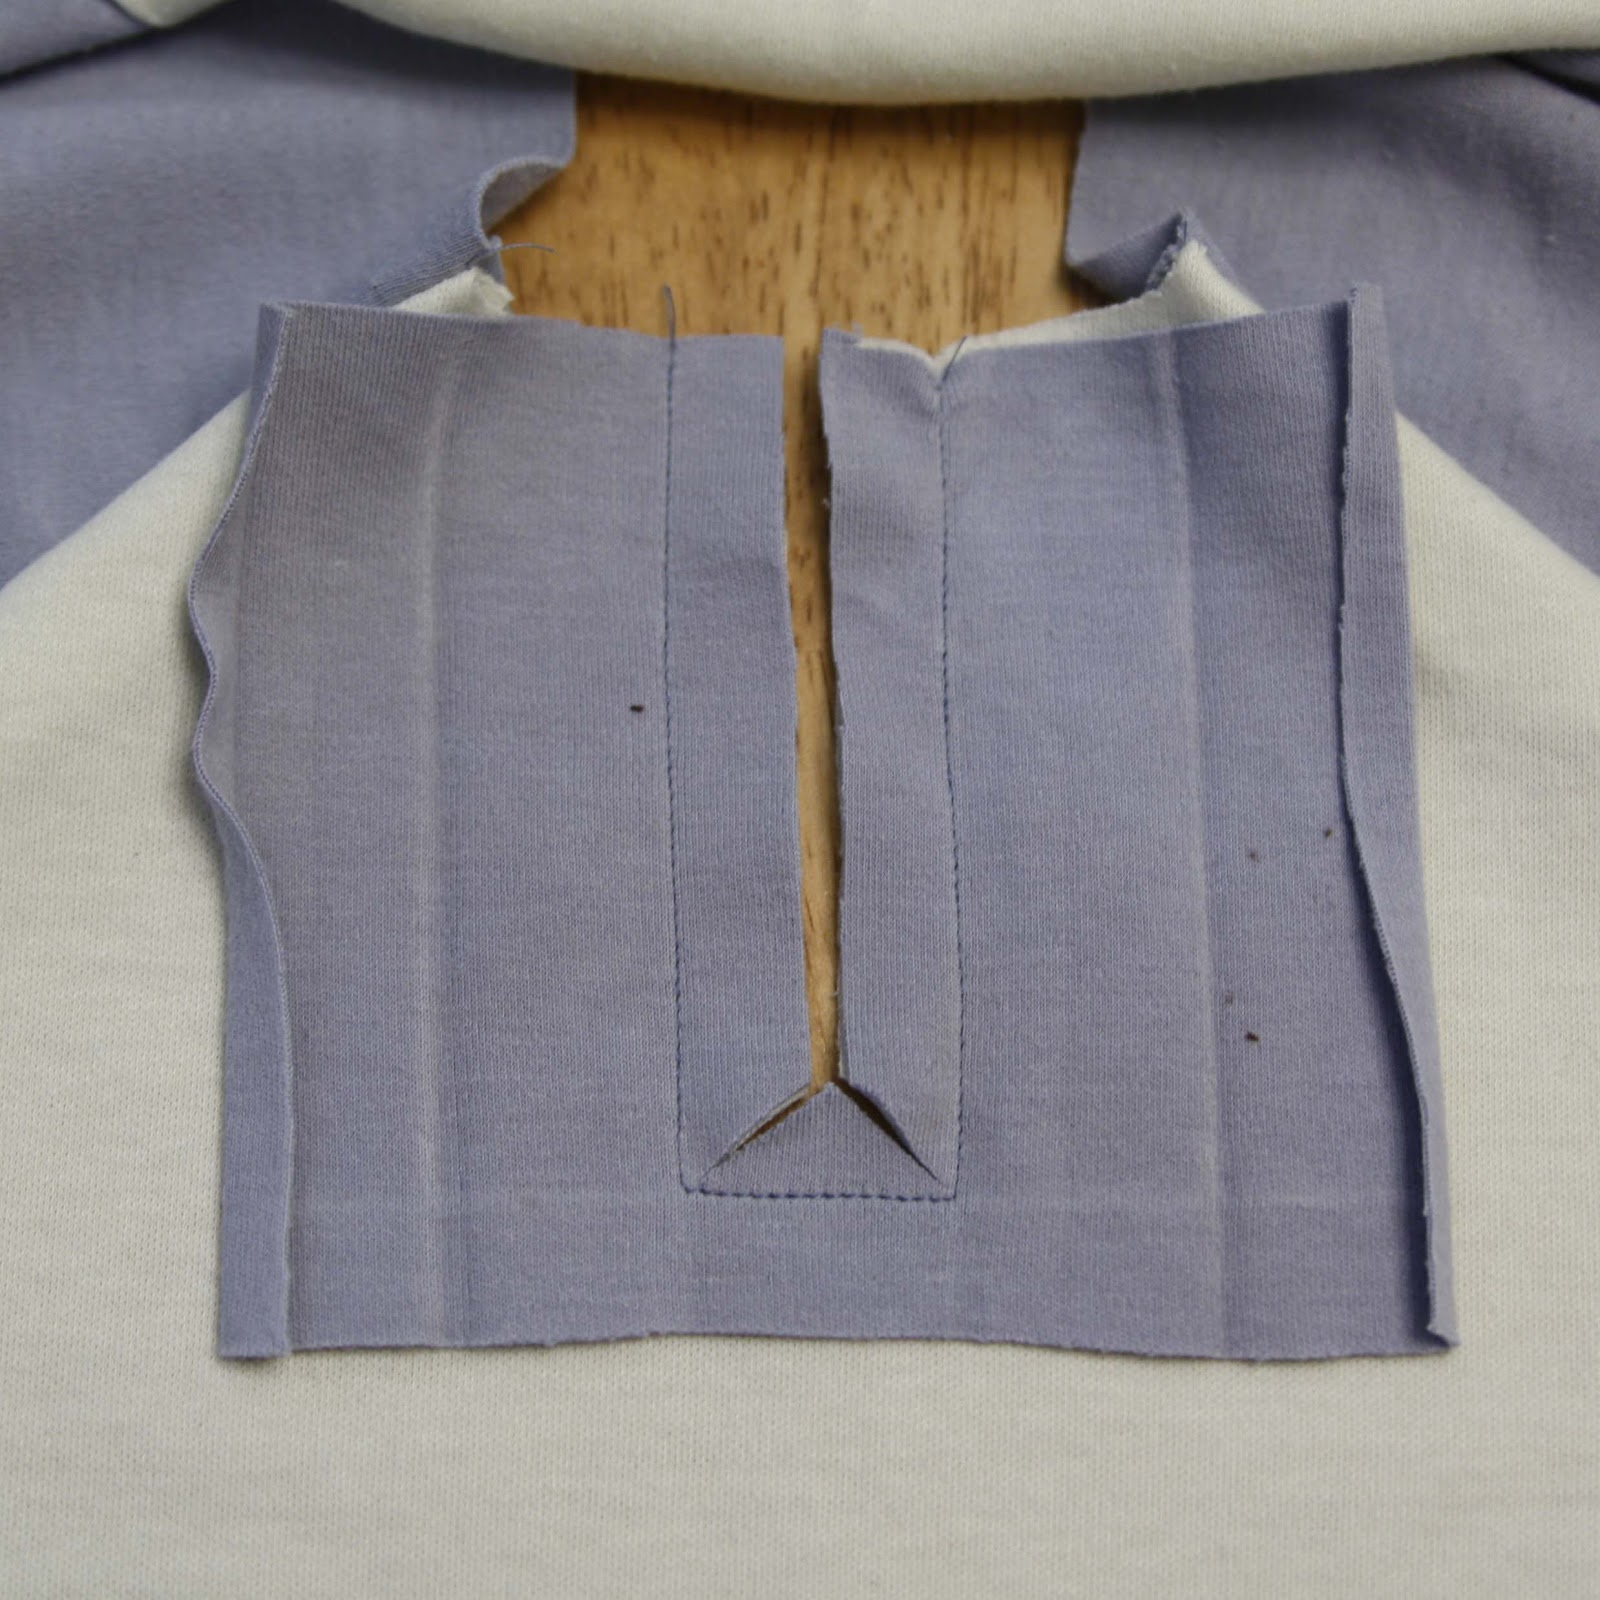 Henley t shirt placket melly sews stop about 14 from the bottom and cut into the corners making an upside down y shape cut as close into the corners as you can without going through the jeuxipadfo Image collections